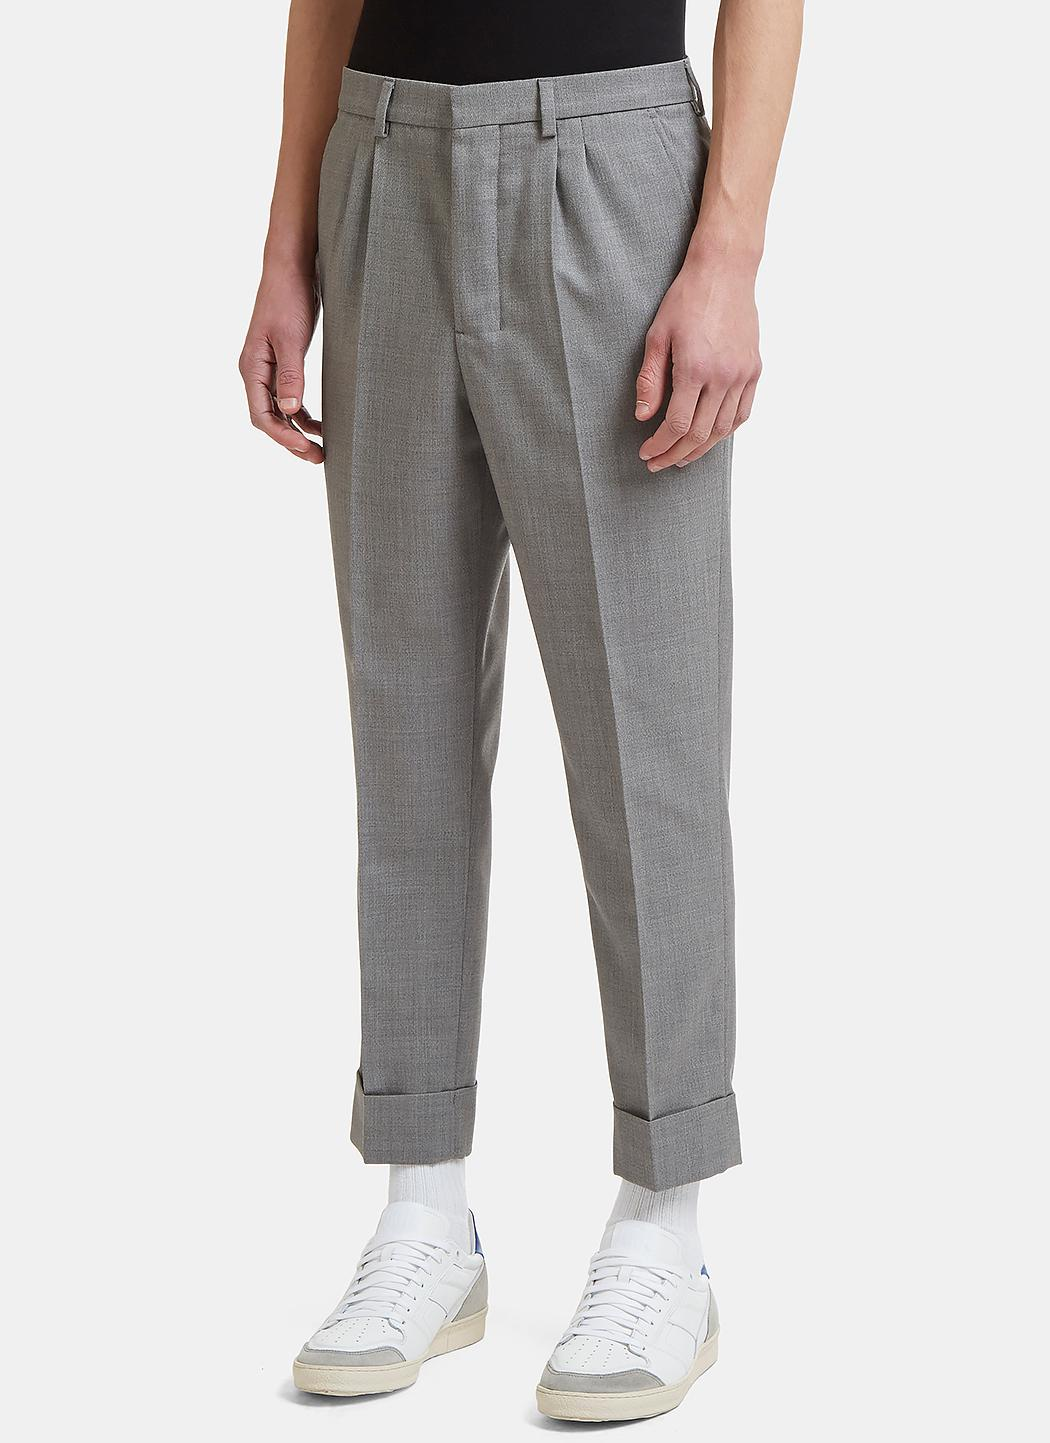 Sale Get Authentic Carrot Fit Gabardine Pants Ami Outlet tqBrn8K